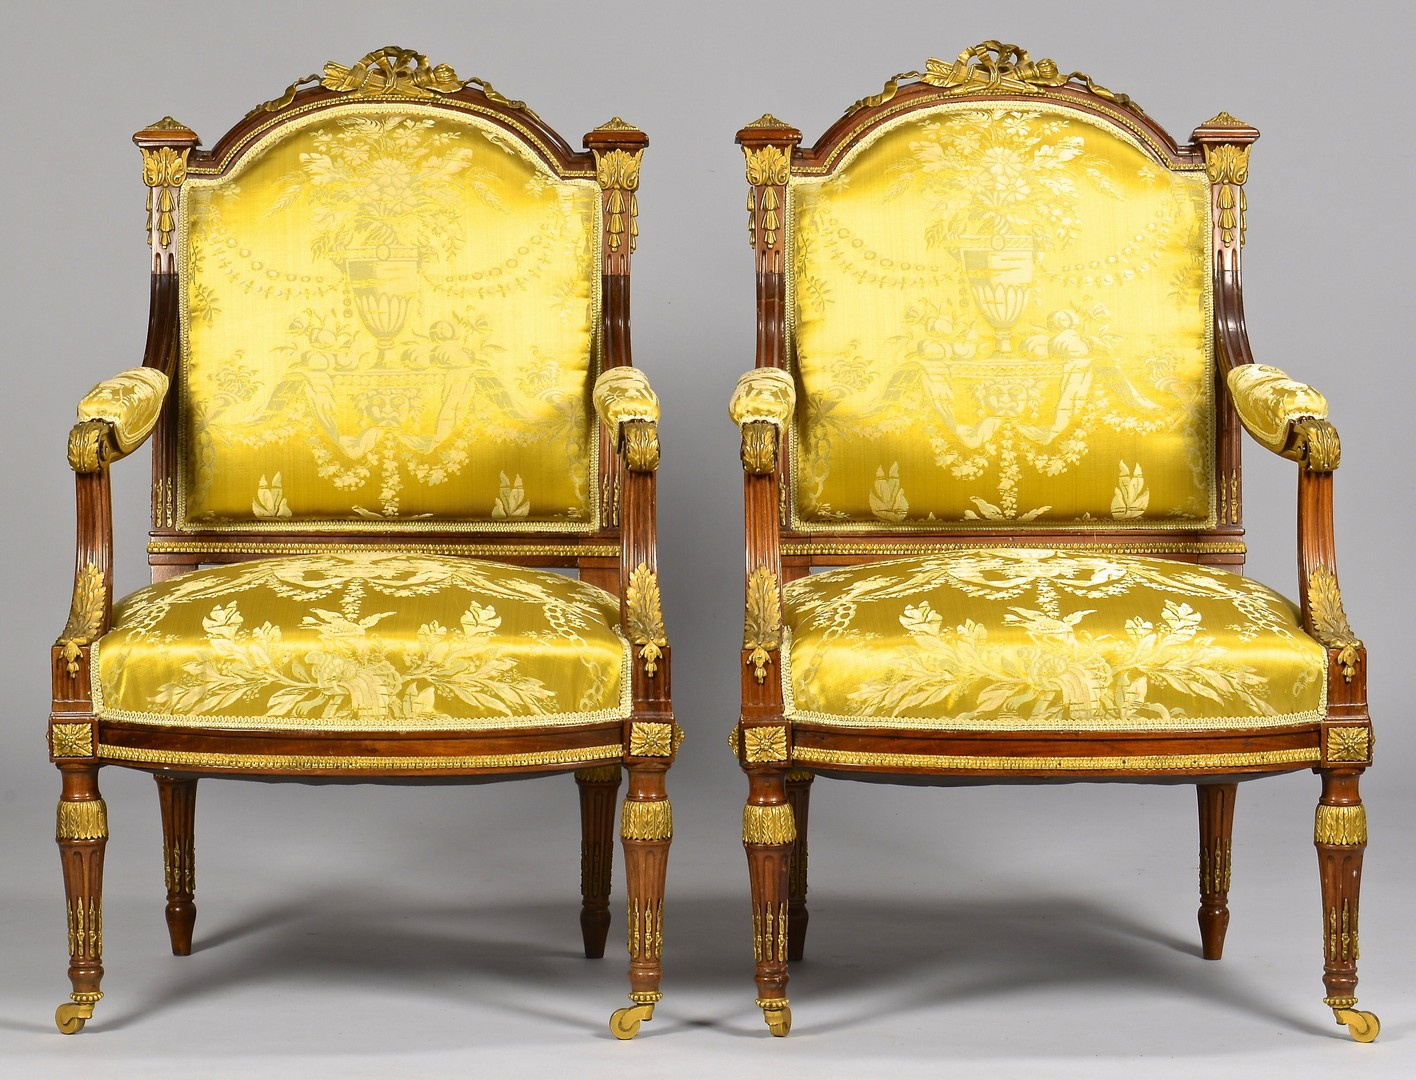 Lot 111: French Louis XVI Style Chairs w/ Bronze Mounts